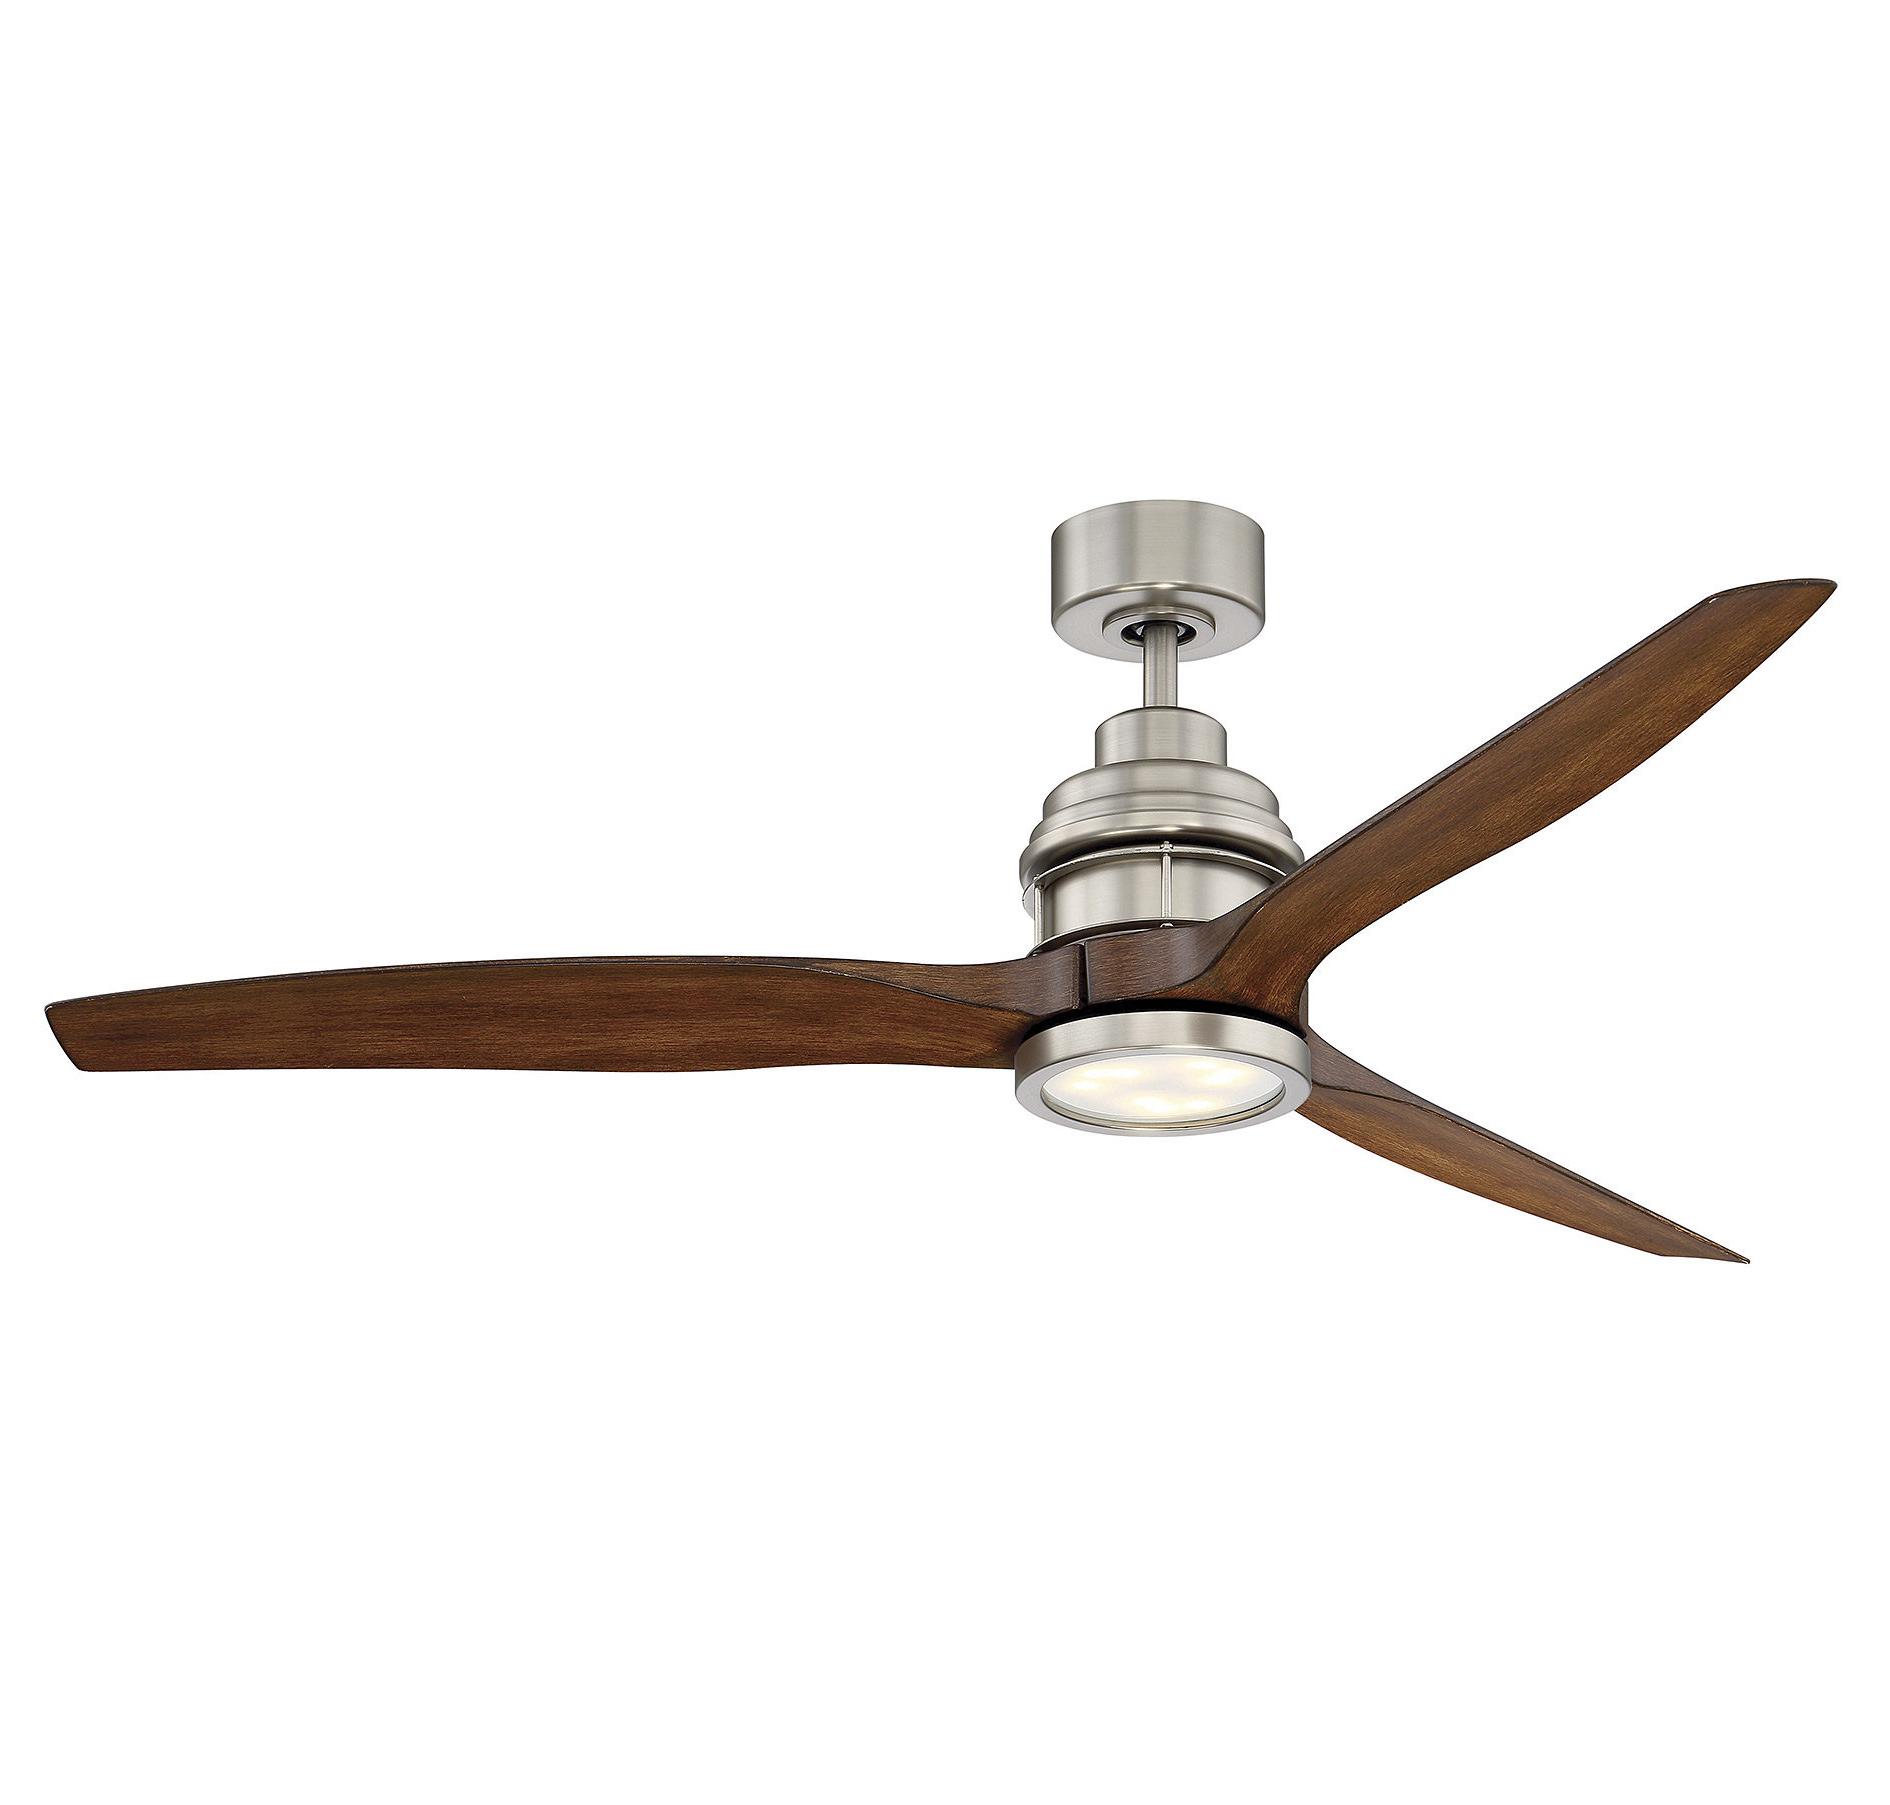 "60"" Harmoneyq 3 Blade Ceiling Fan With Remote & Reviews Regarding Widely Used Roberts 5 Blade Ceiling Fans (View 15 of 20)"